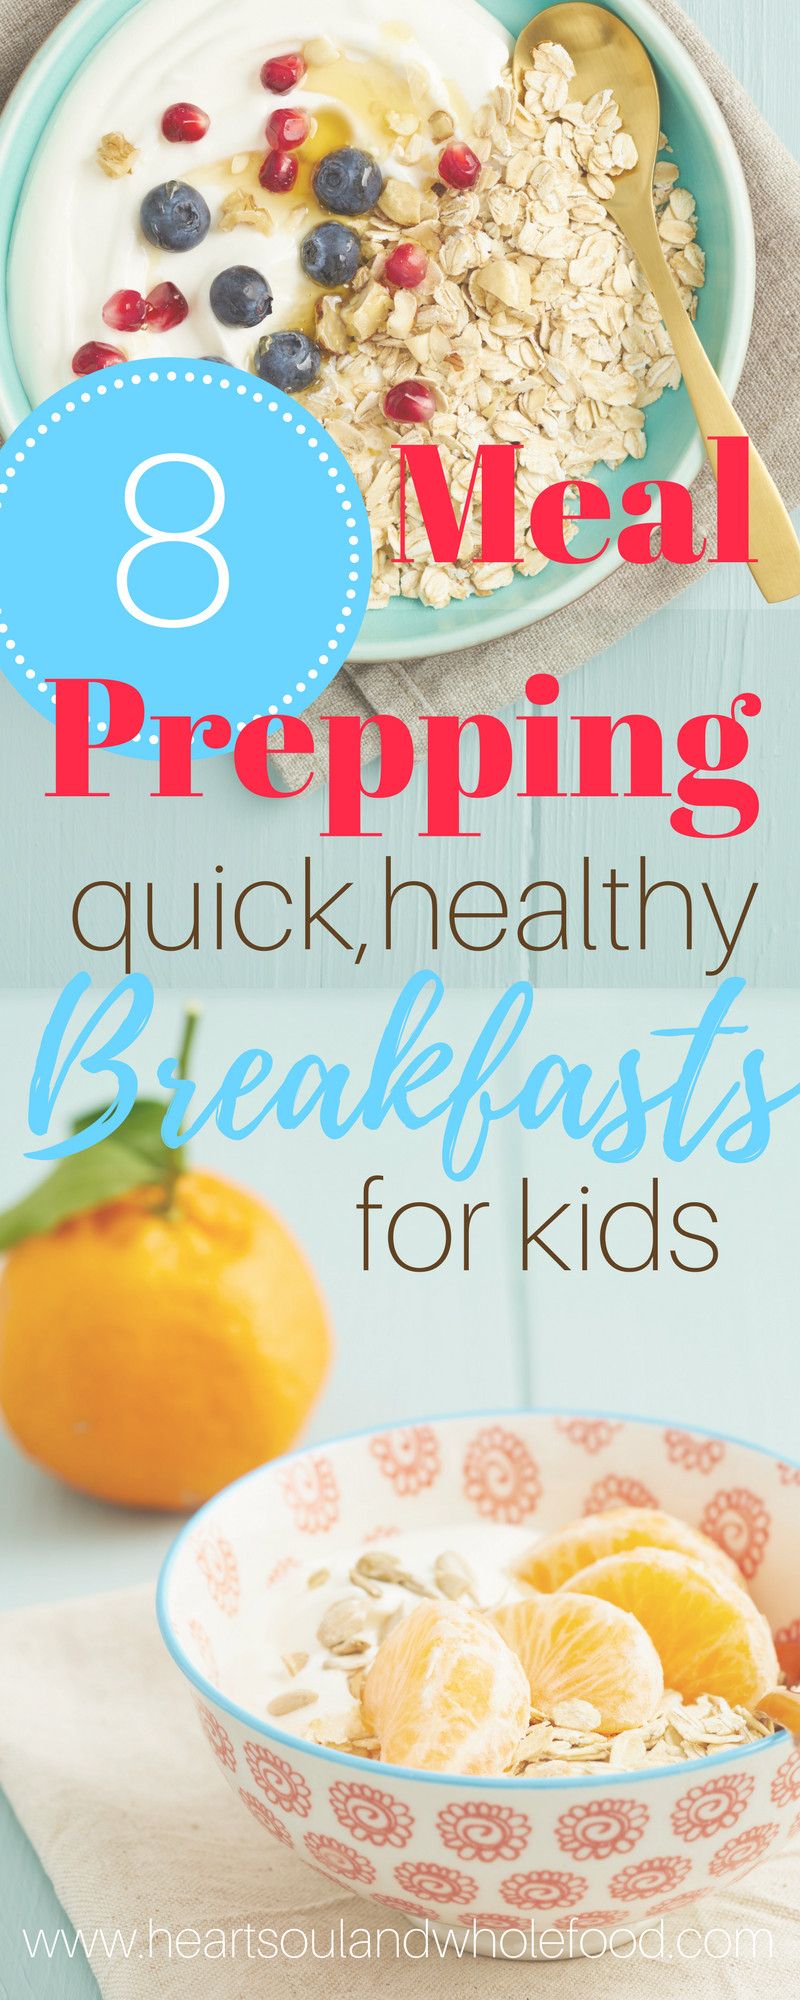 Quick Healthy Breakfast For Kids  Meal Prepping Quick Healthy Breakfasts for Kids Heart